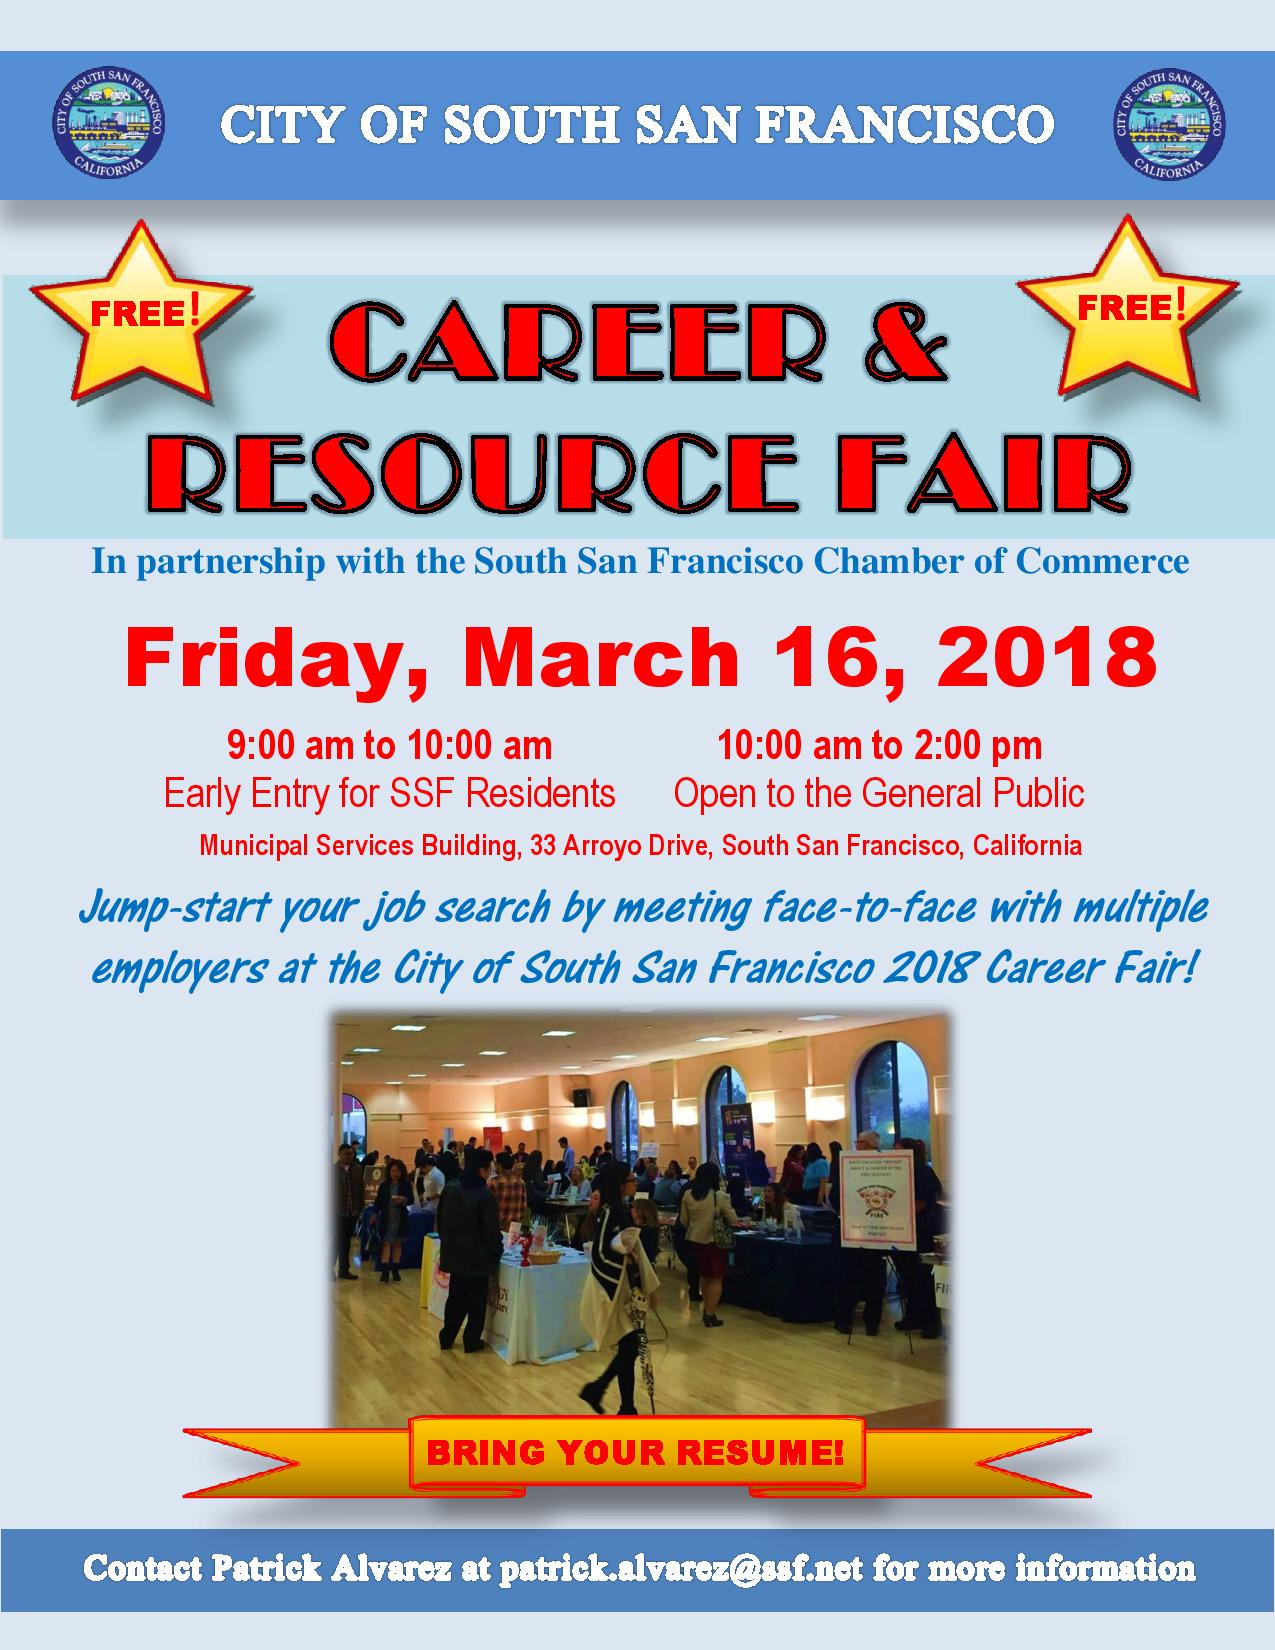 City of South San Francisco Career and Resource Fair March 16th at MSB